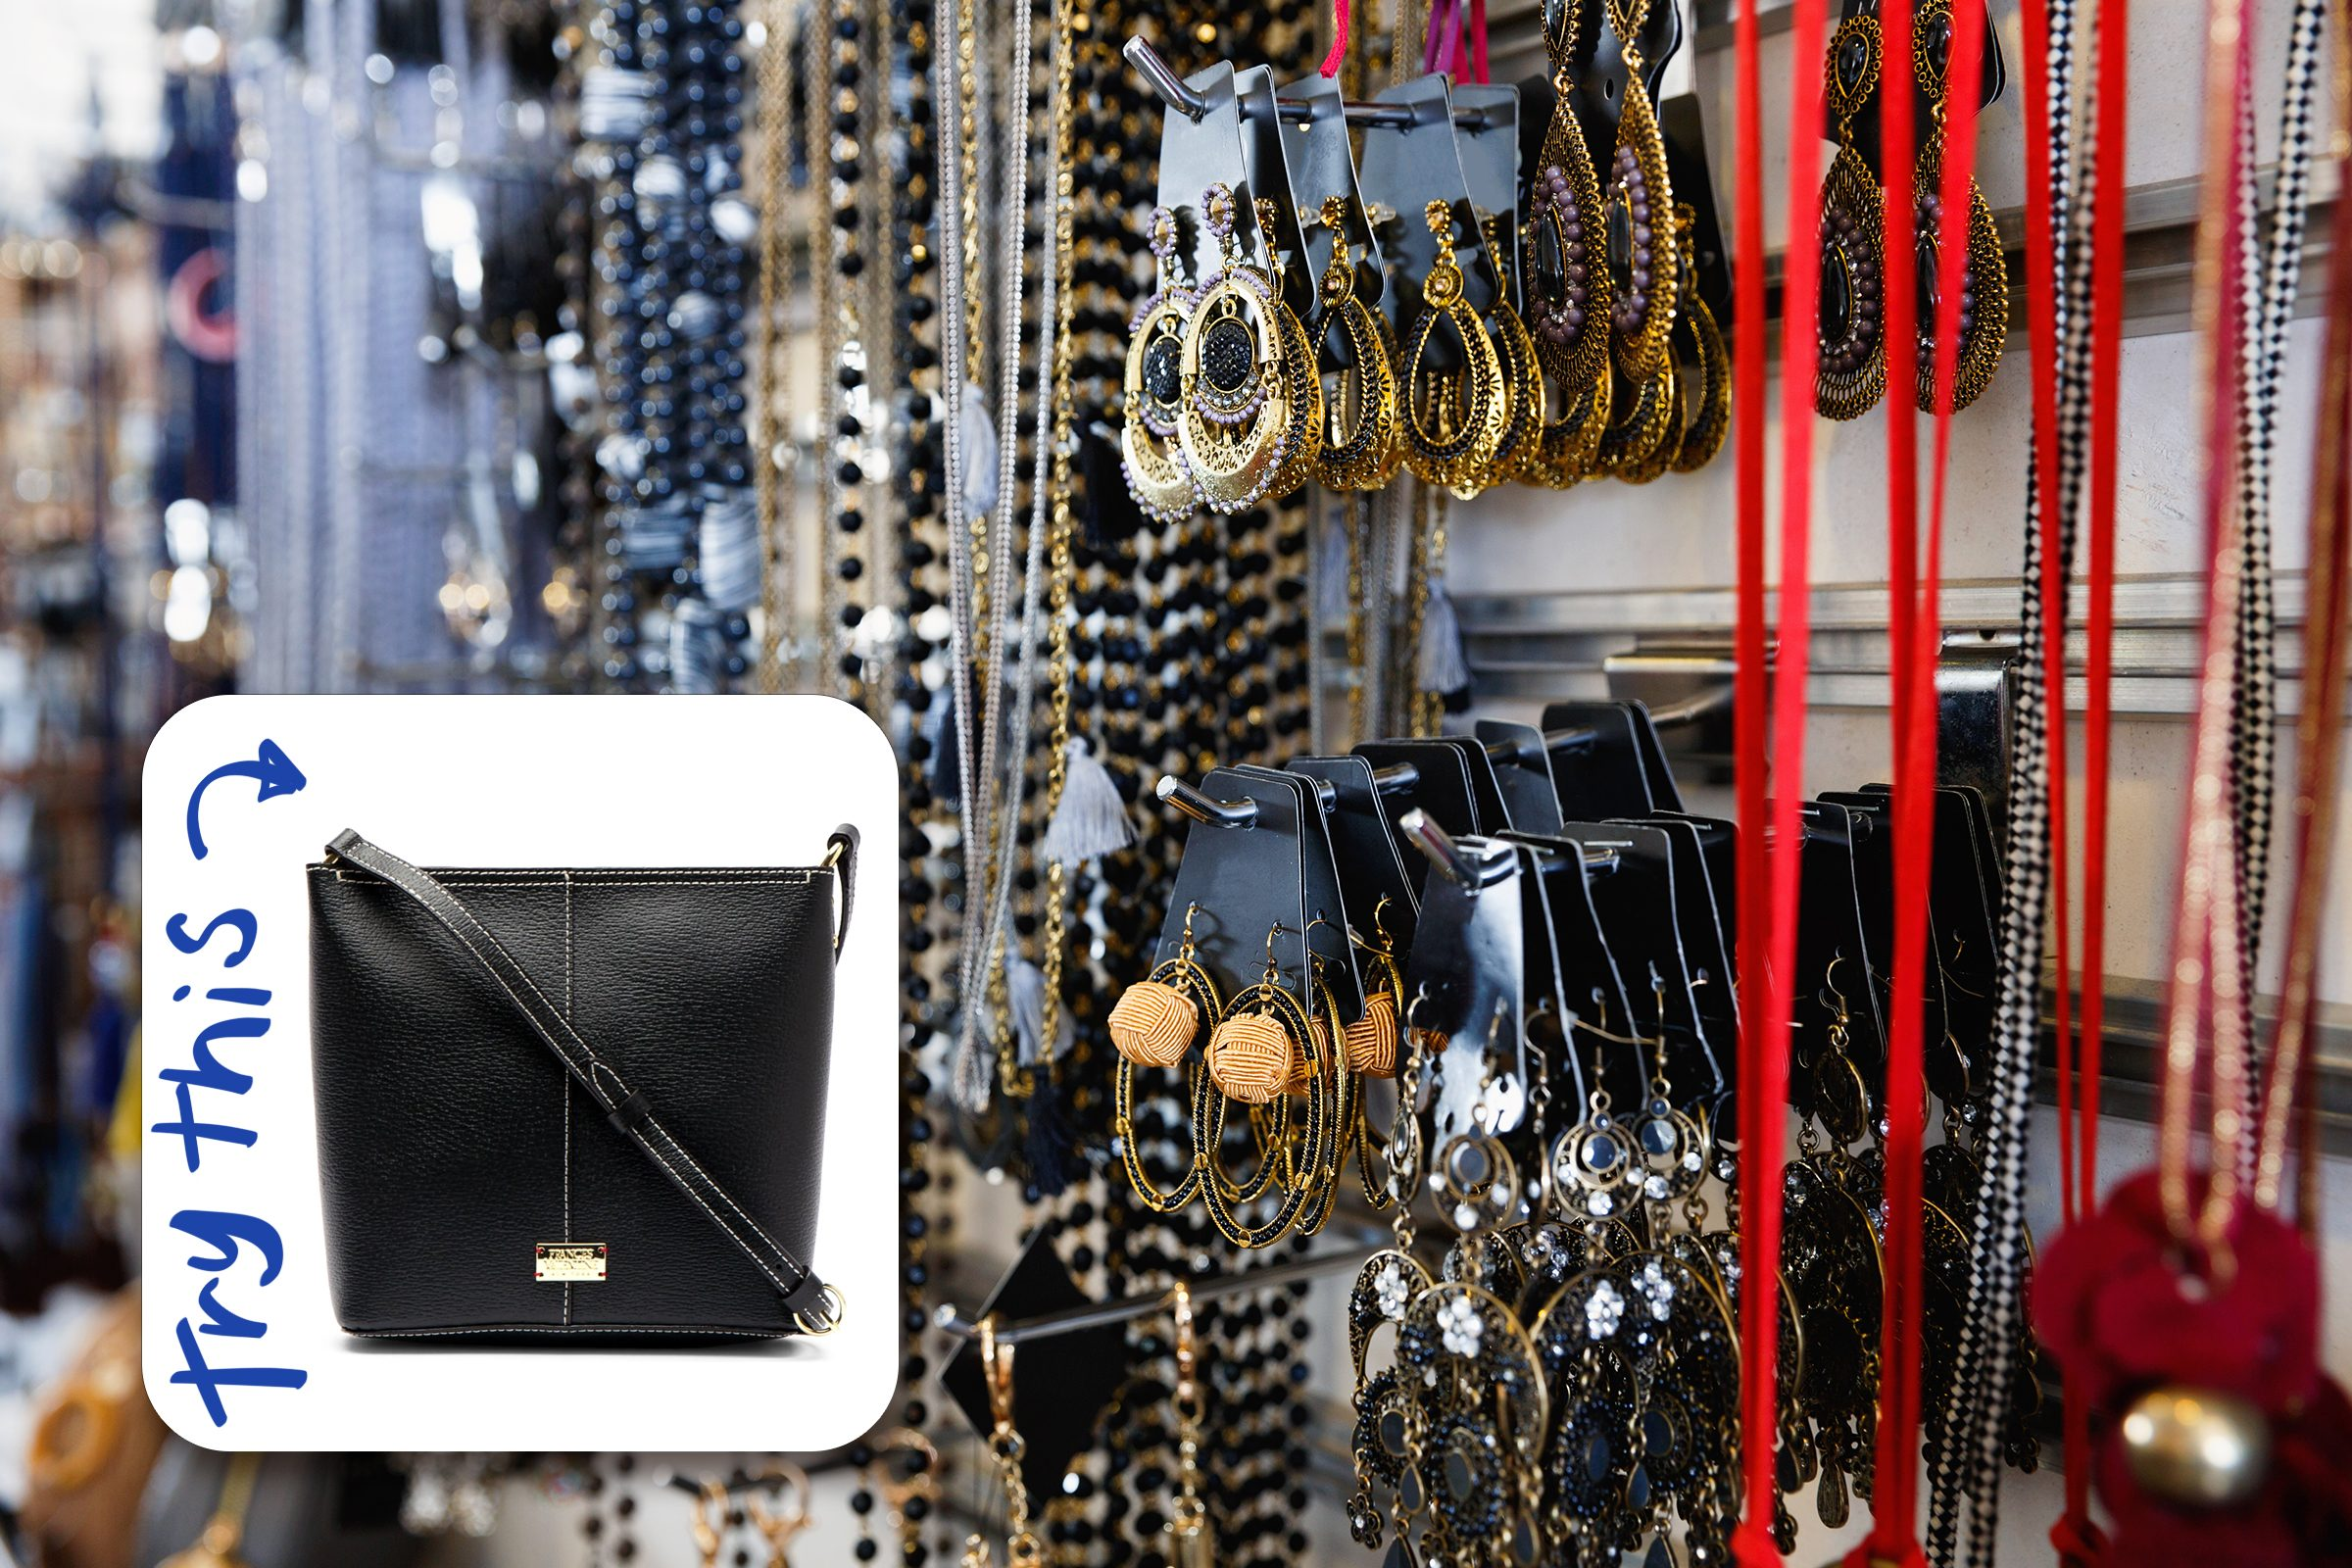 jewelry hanging in store with inset of a bag to buy